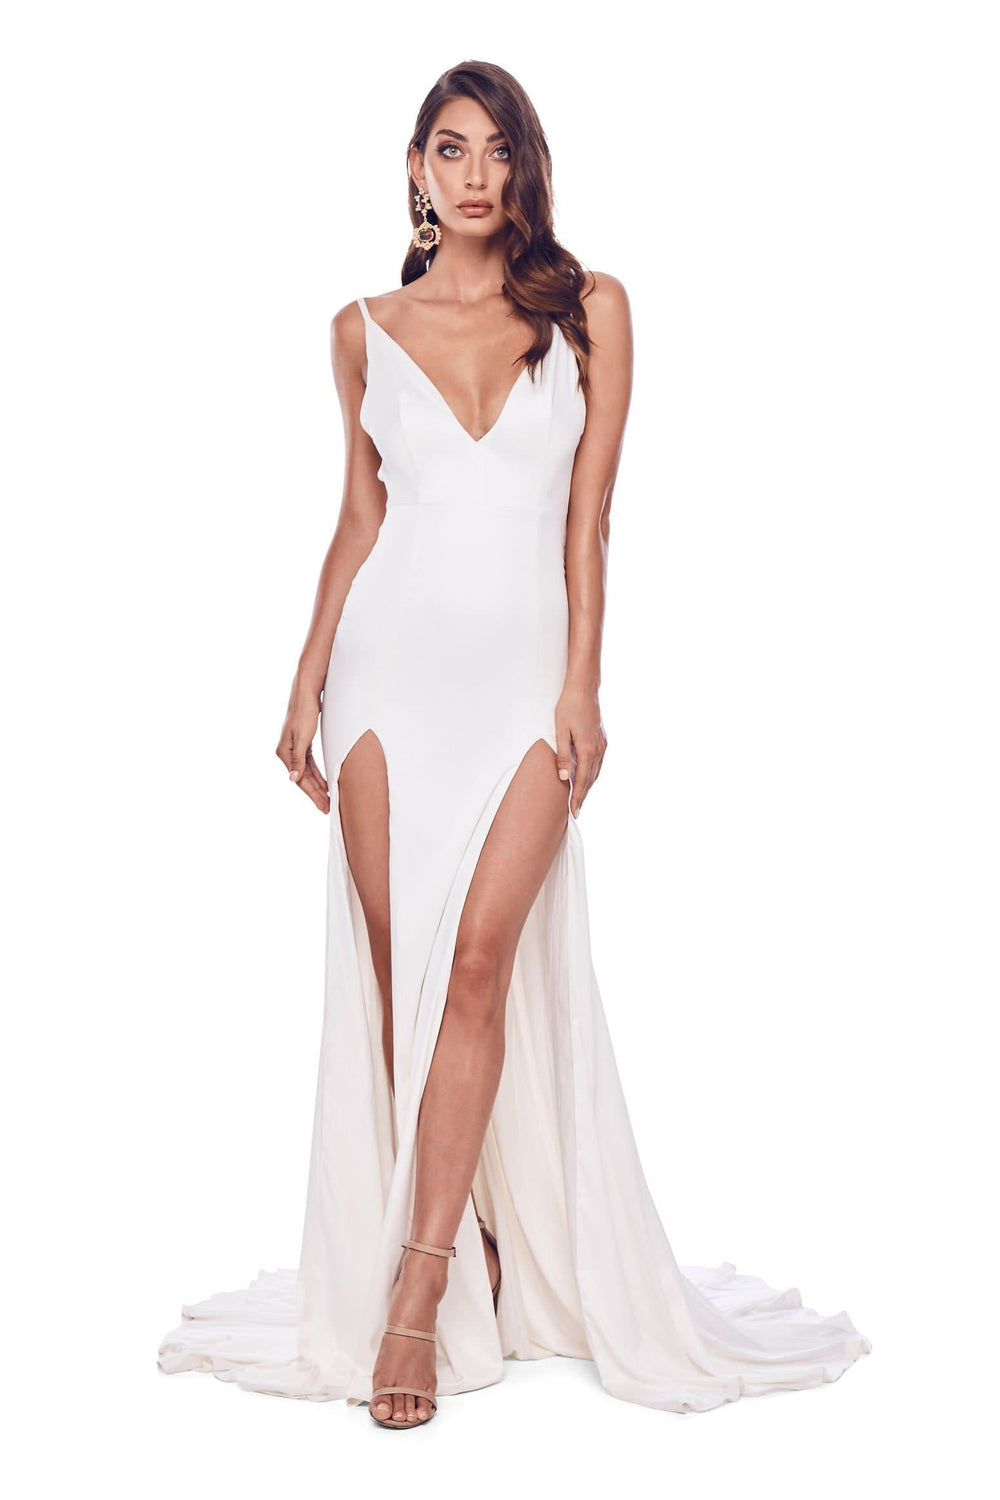 Izabelle - White Satin Backless Gown with Plunge Neckline & Side Slits